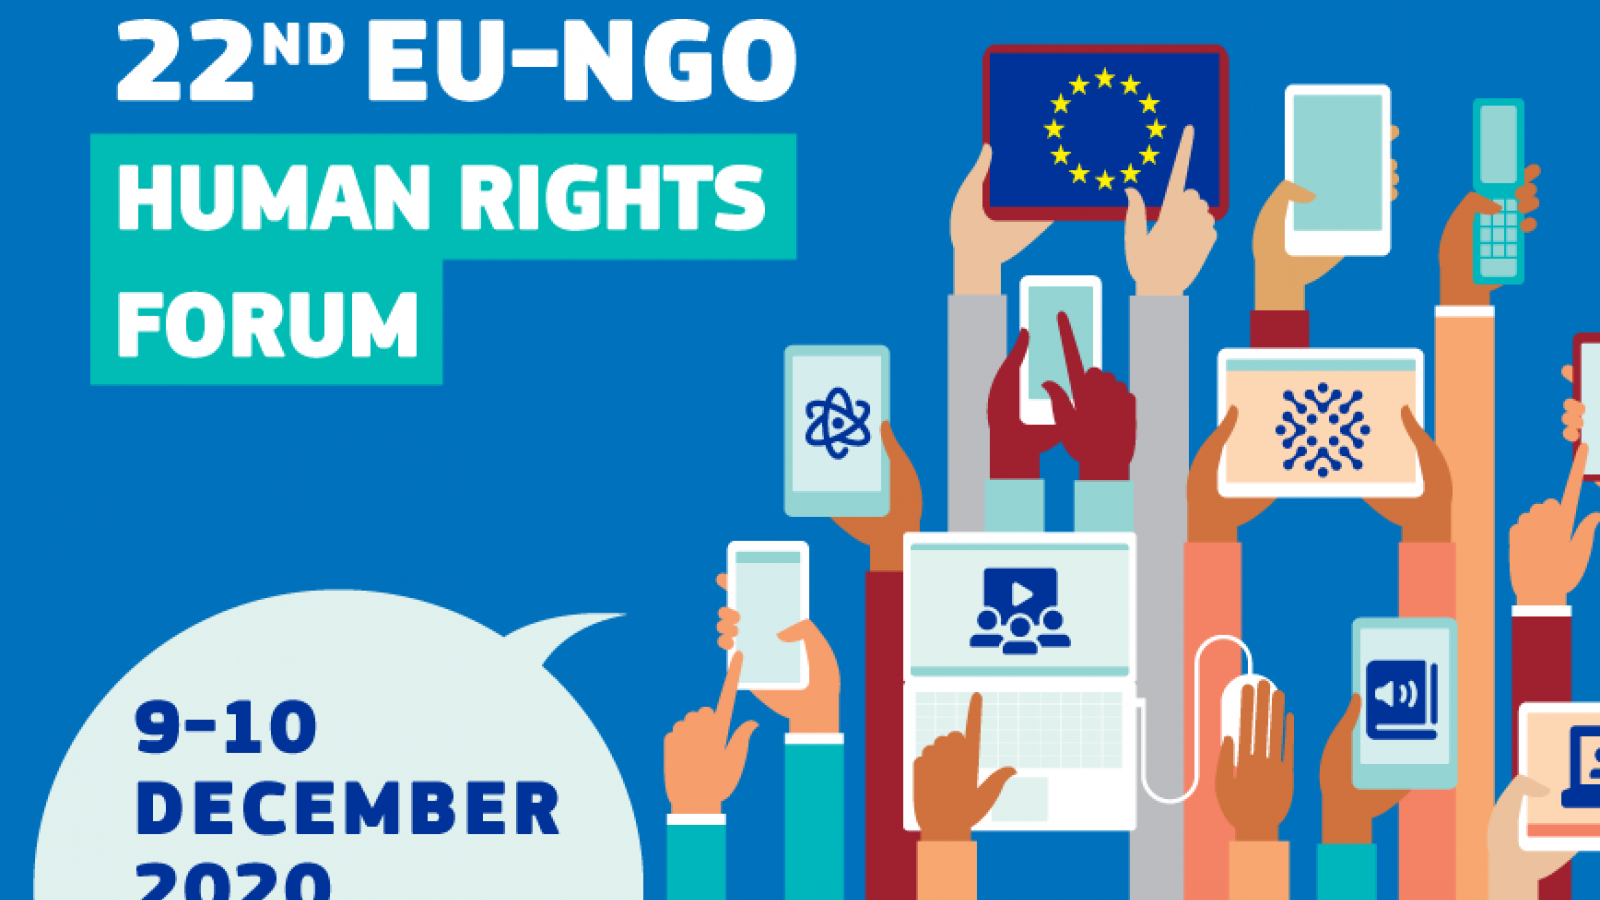 22nd EU-NGO Human Rights Forum looks into impact of new technologies on human rights